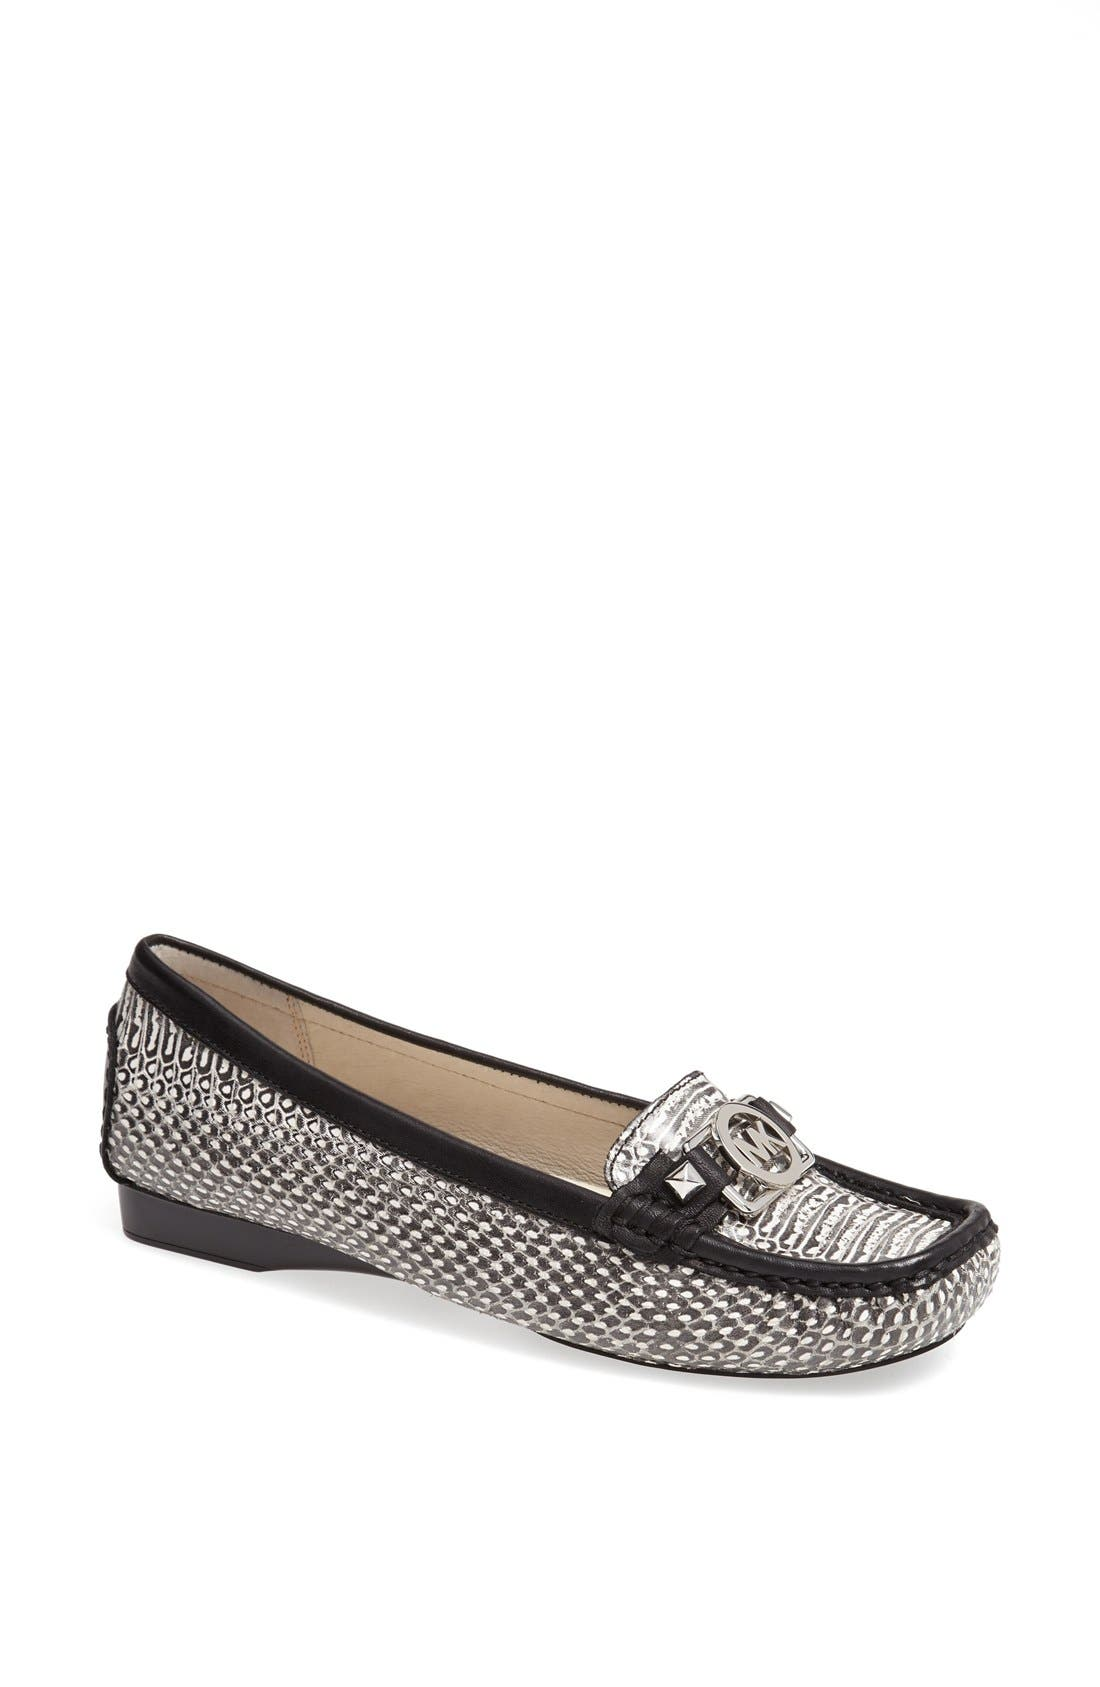 Alternate Image 1 Selected - MICHAEL Michael Kors 'Charm' Snake Embossed Leather Flat